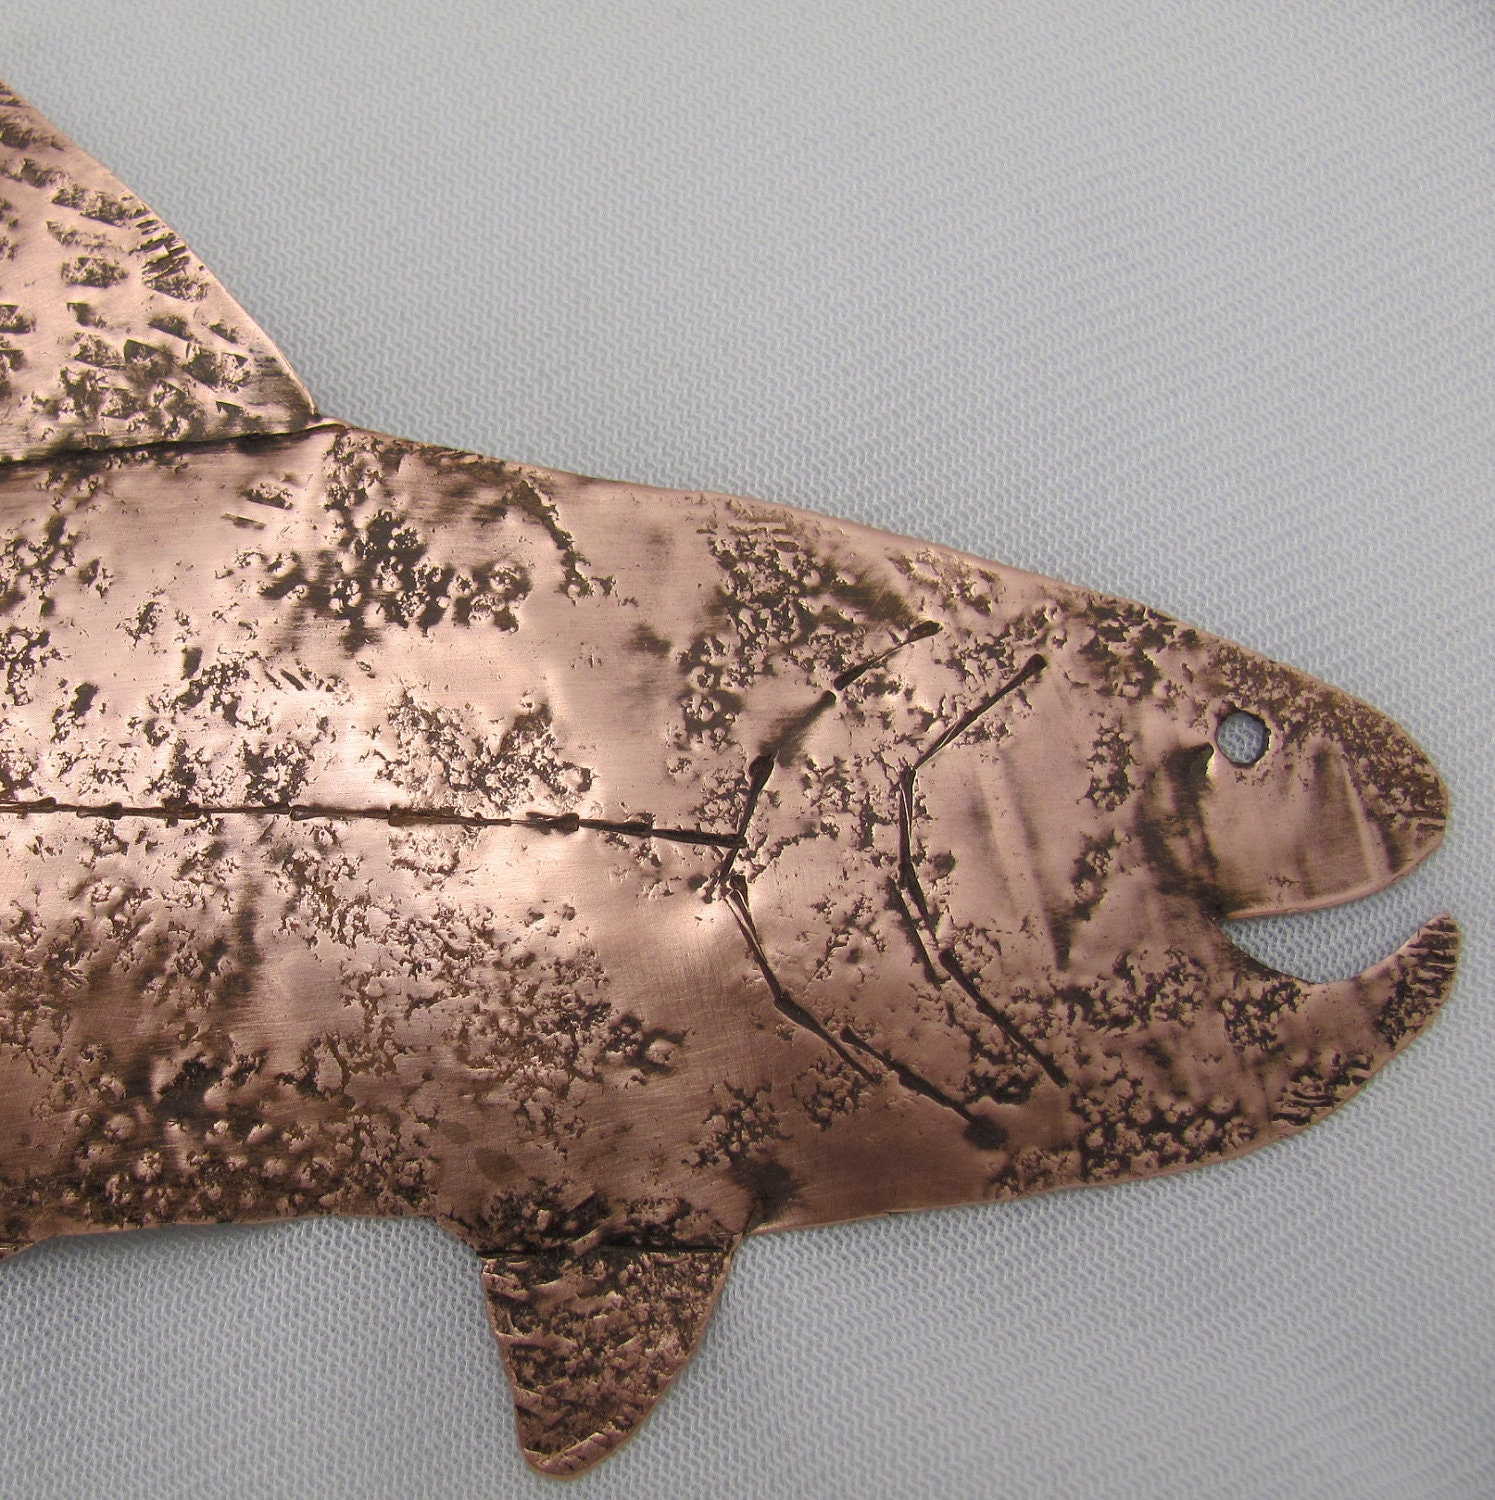 Copper Fish. Wall Hanging, GUY GIFT. Copper Trout, Fish Art Sculpture needs home. - ruddlecottage